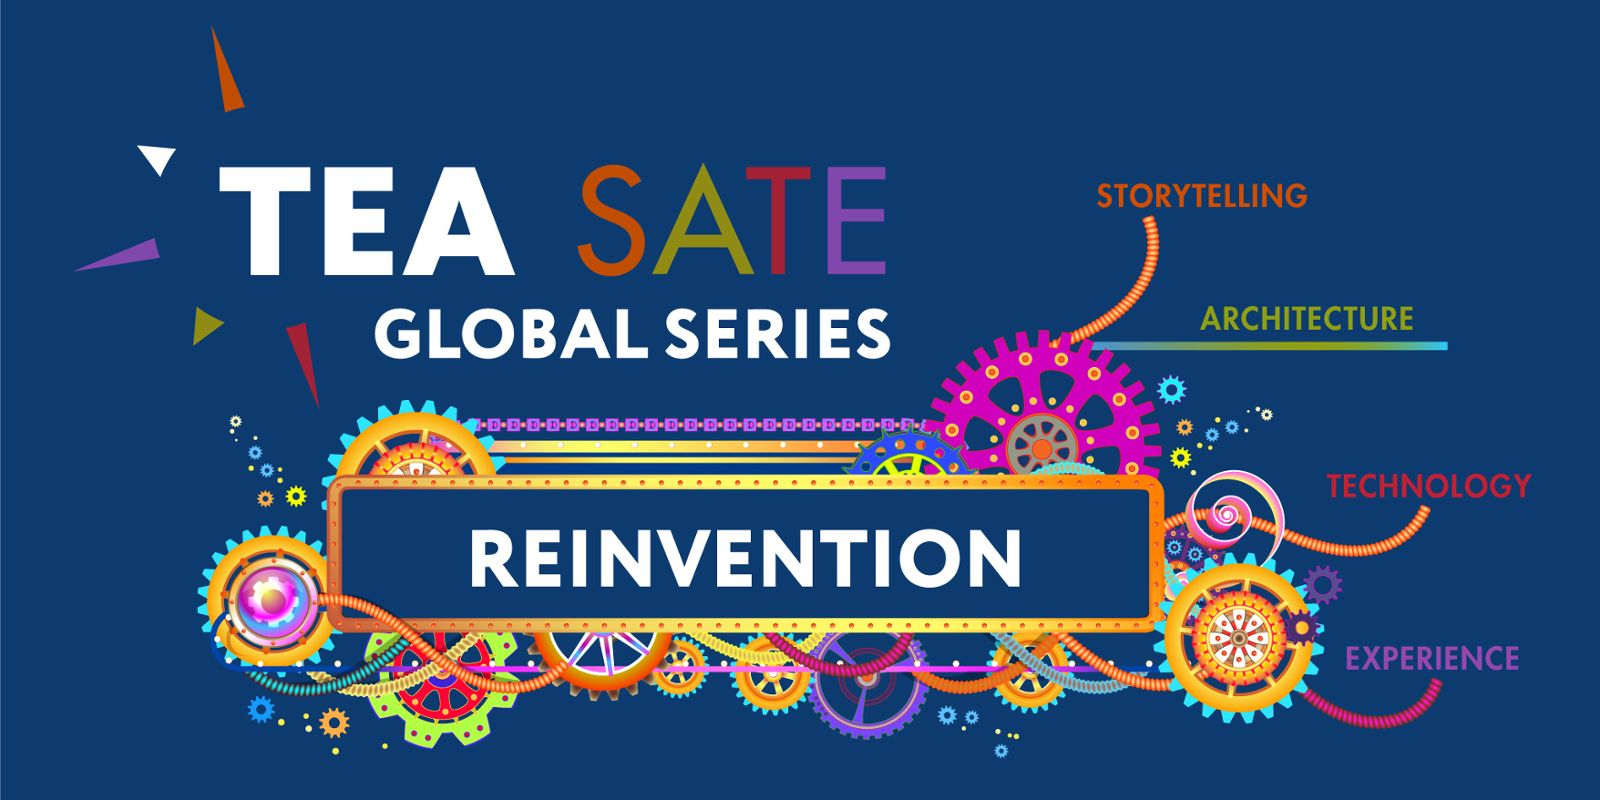 TEA SATE Global Series: REINVENTION presented by The Hettema Group